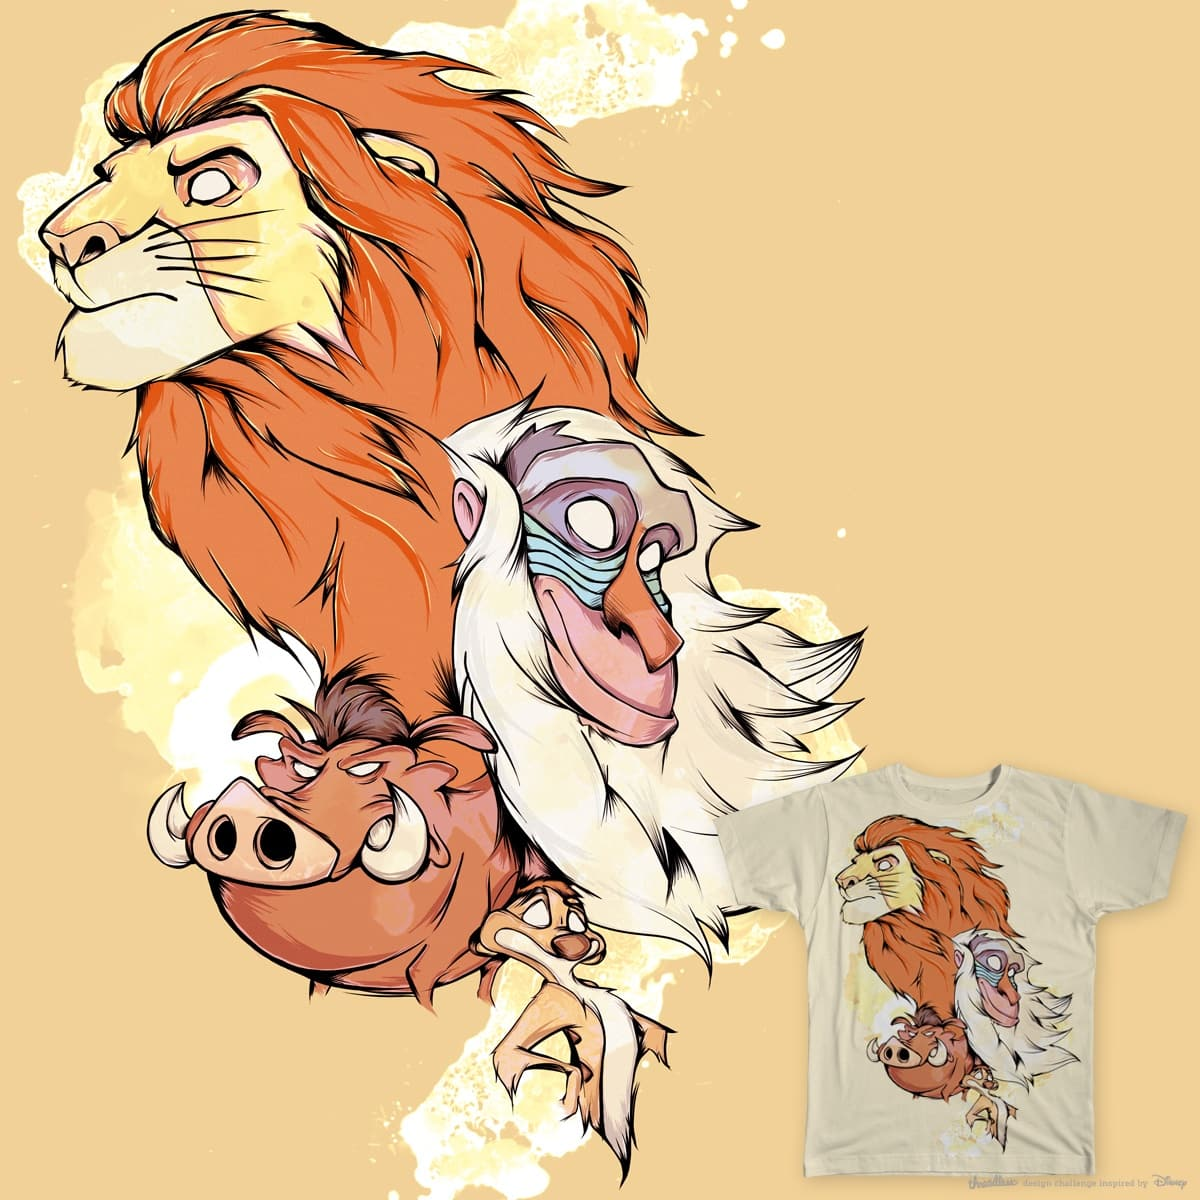 El rey  by PackoMora on Threadless